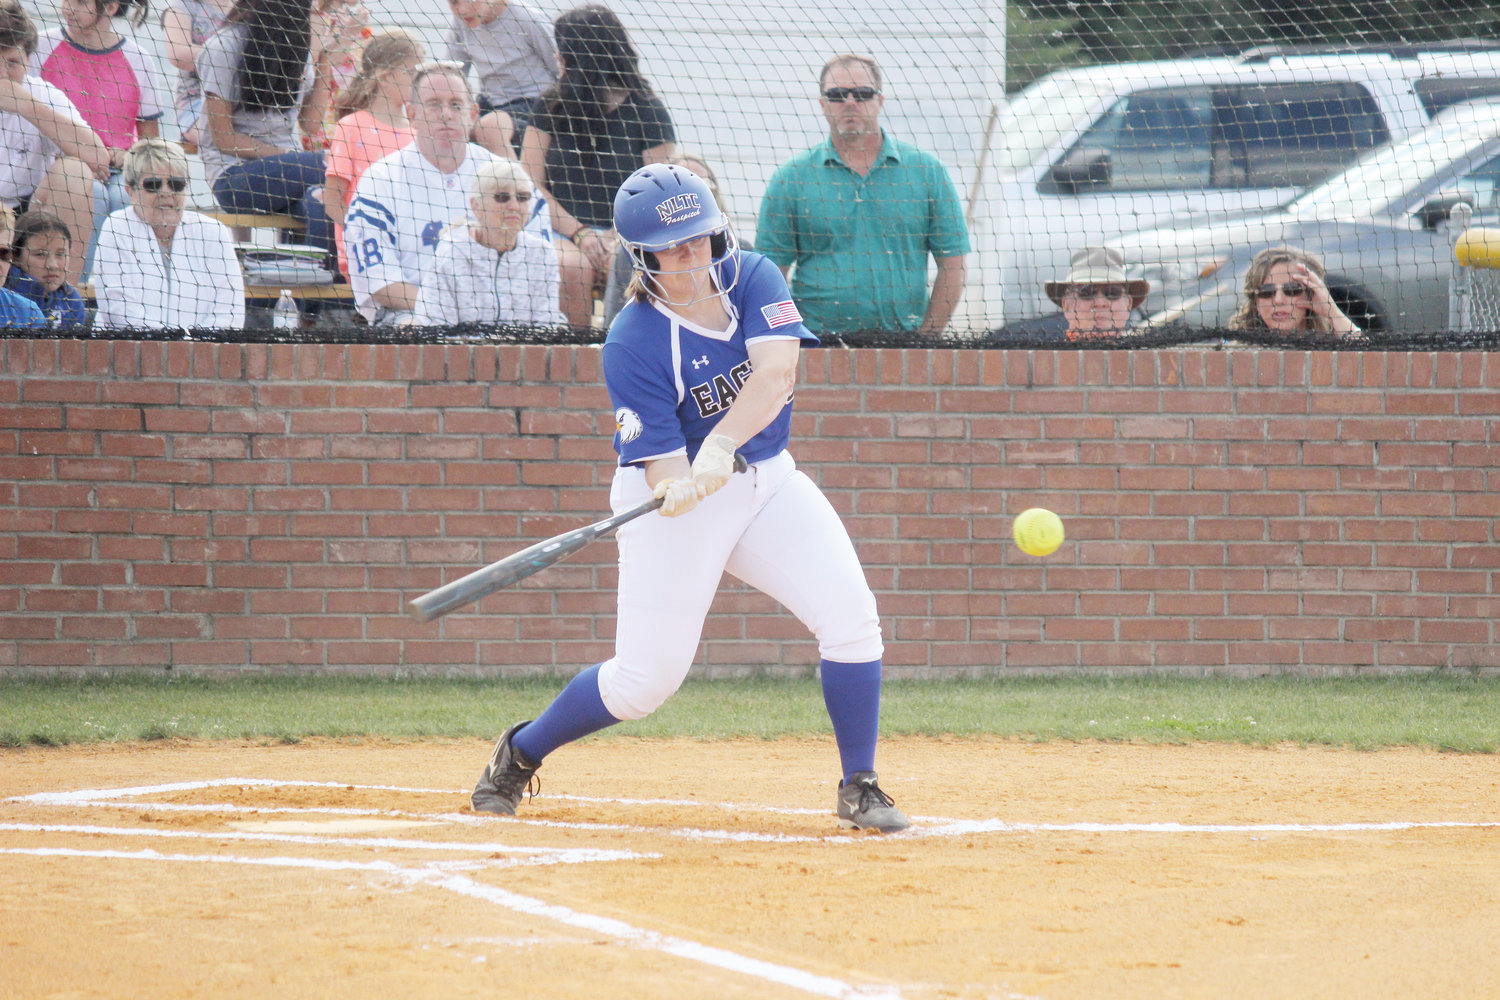 Cape Fear Christian Academy's Kristen Bass swings on a pitch during a game last season. The NCHSAA announced its decision to extend the statewide hold on all interscholastic athletics until May 15.